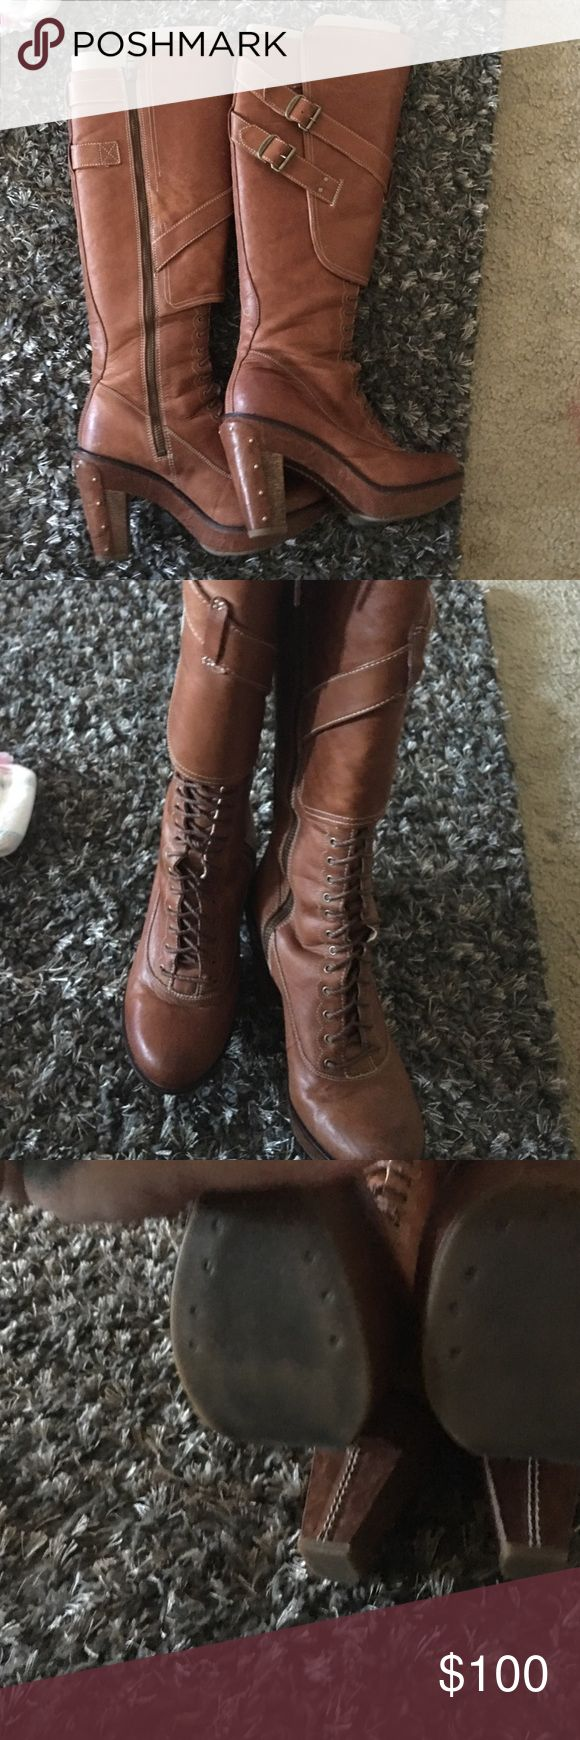 ⭐️SALE⭐️ USED TIMBERLAND KNEE HIGH BOOTS USED bought from a fellow posher and is a bit tight for my calves. Well haven't really tried to undo the laces as it has give and should fit a range of sizes. Said was only used a couple of times. It is in excellent condition and very high quality. Has zipper and laces. Size 7 and true to size Timberland Shoes Lace Up Boots